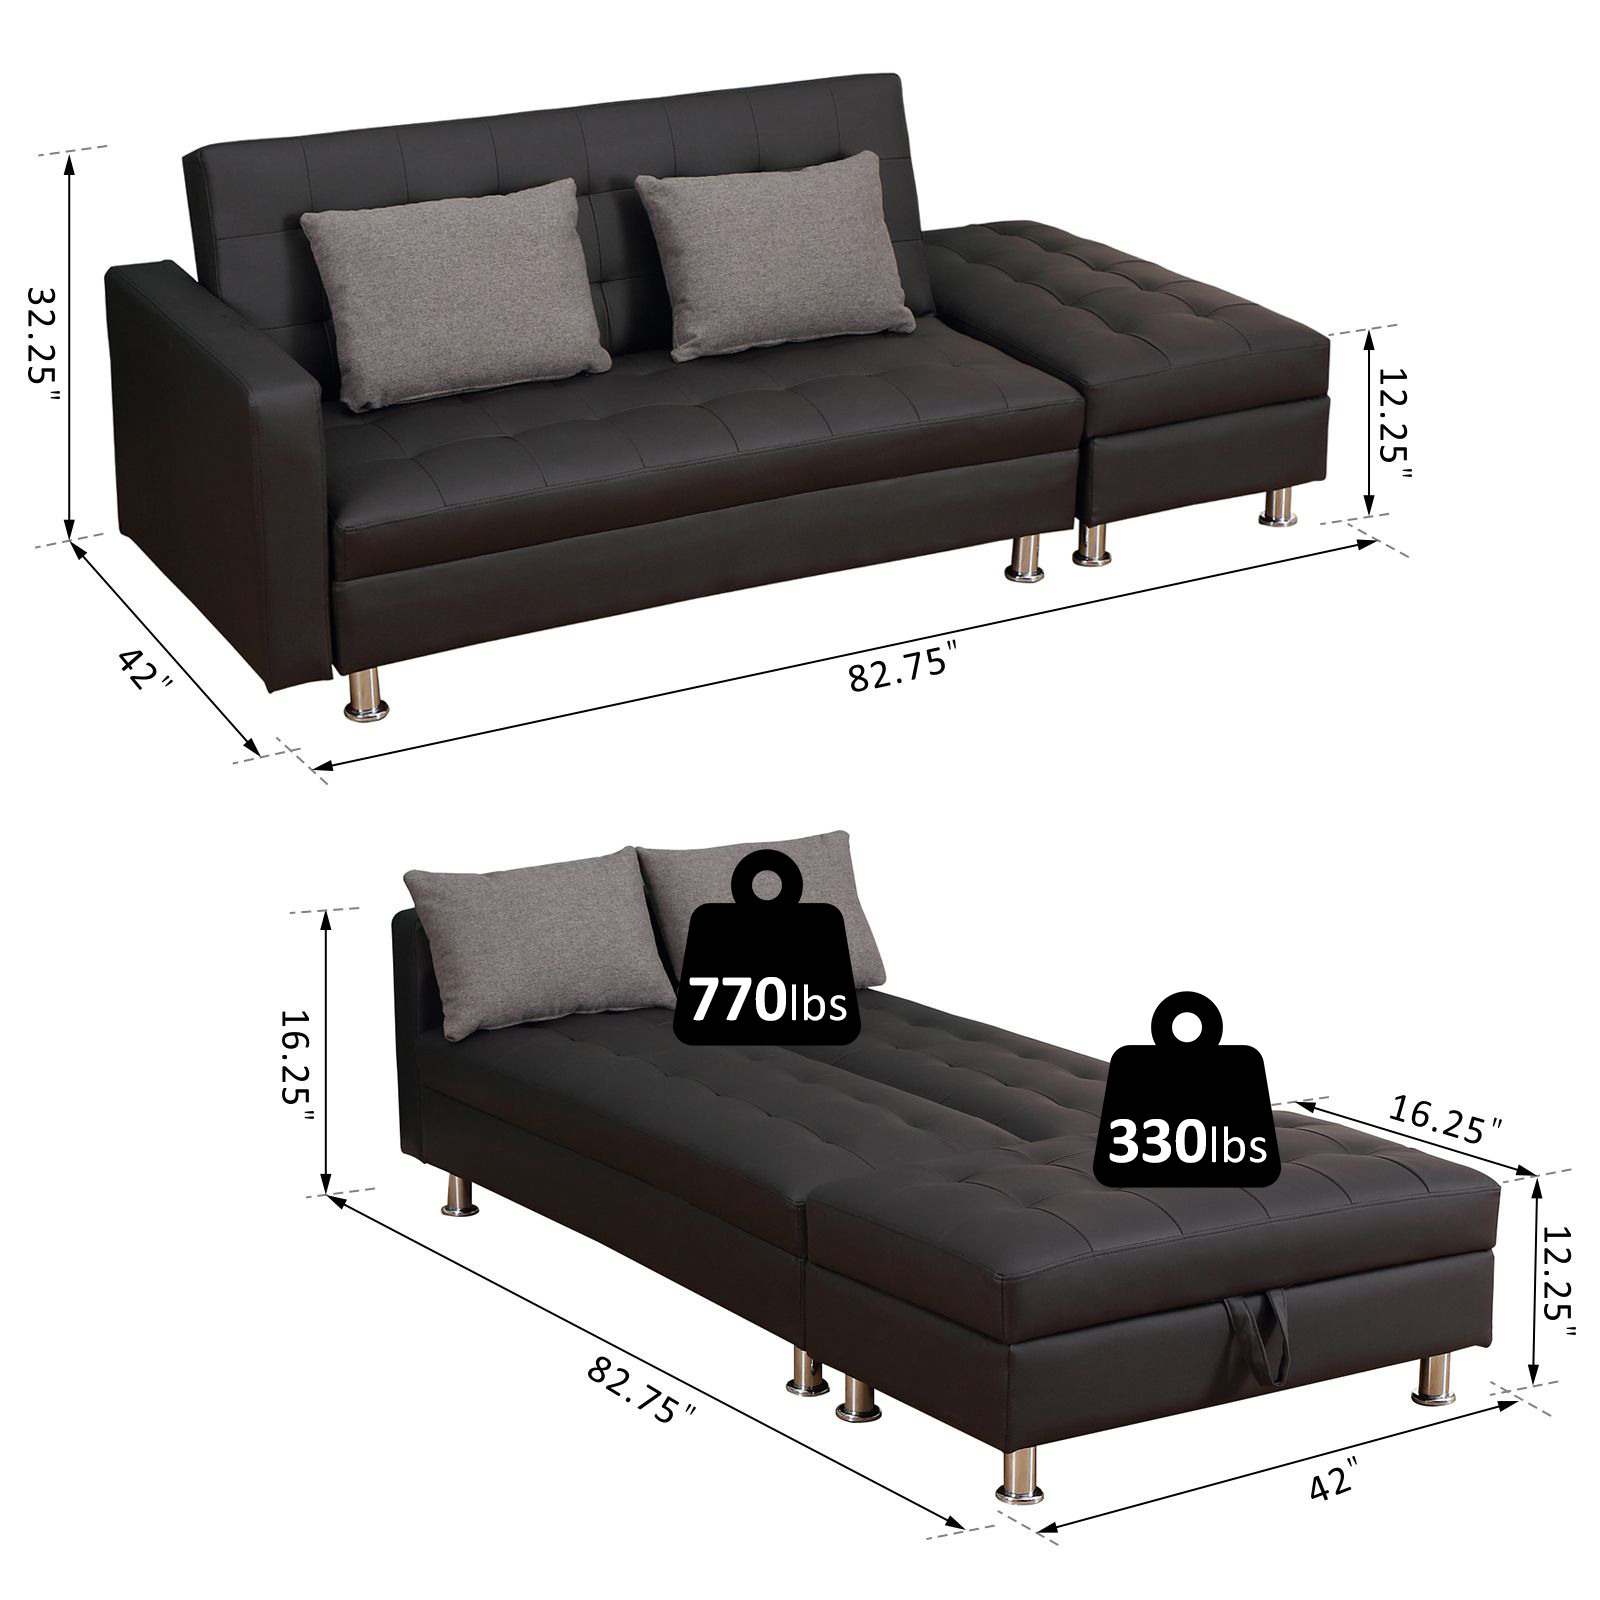 Homcom Twin Size Faux Leather Convertible Sleeper Sofa Bed With Storage Ottoman Black With Grey Pillows Walmart Com Walmart Com